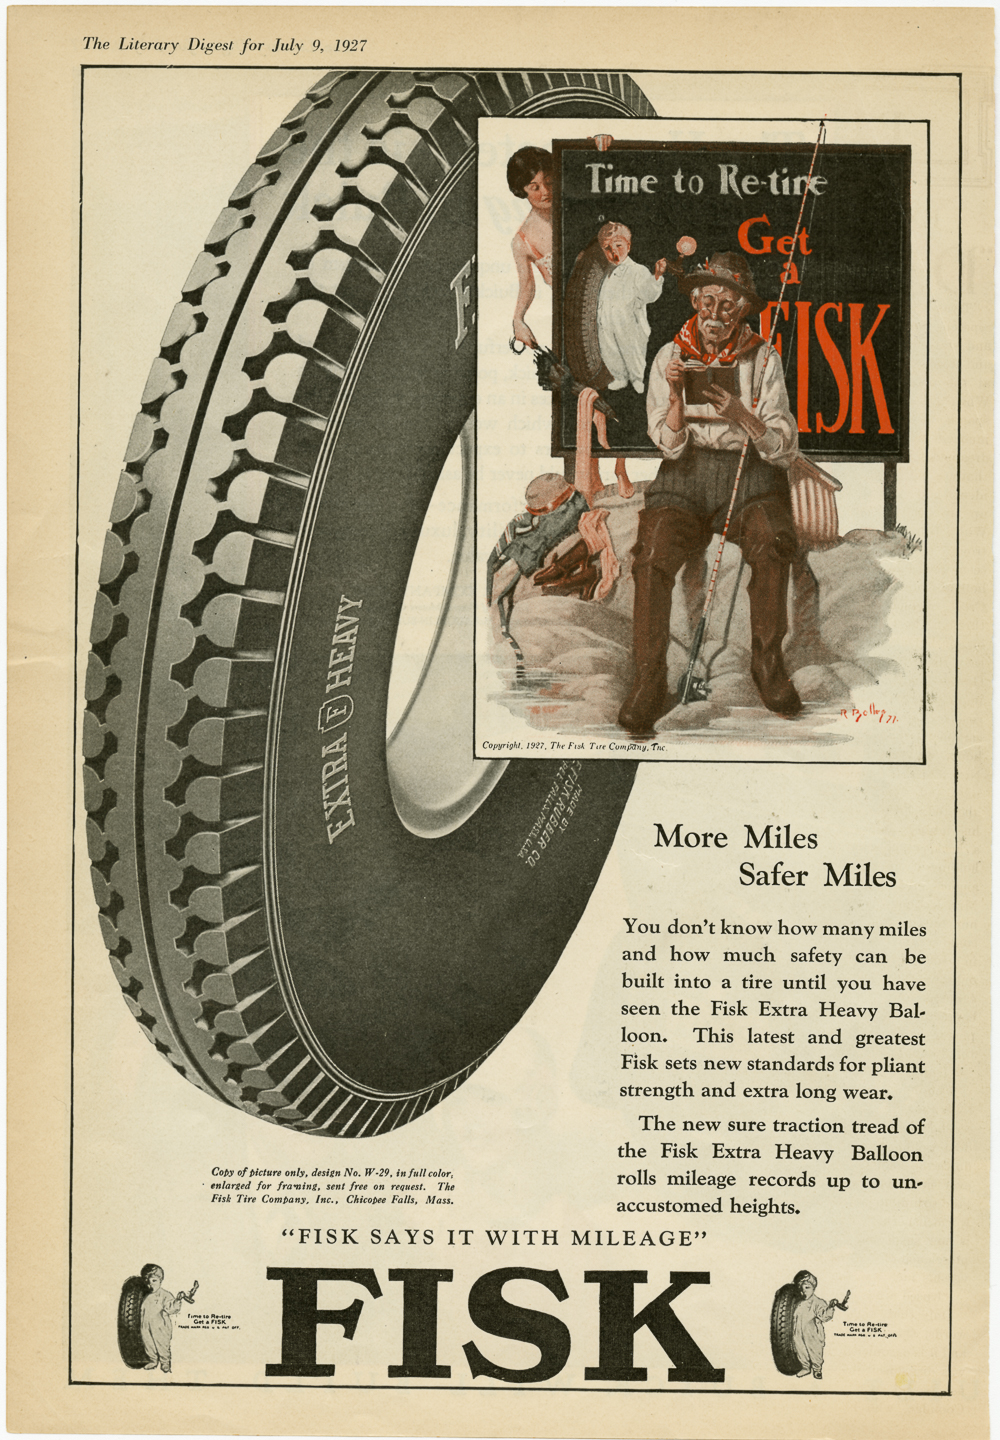 Fisk Tire Company Print Ad - Fisk Says it With Mileage